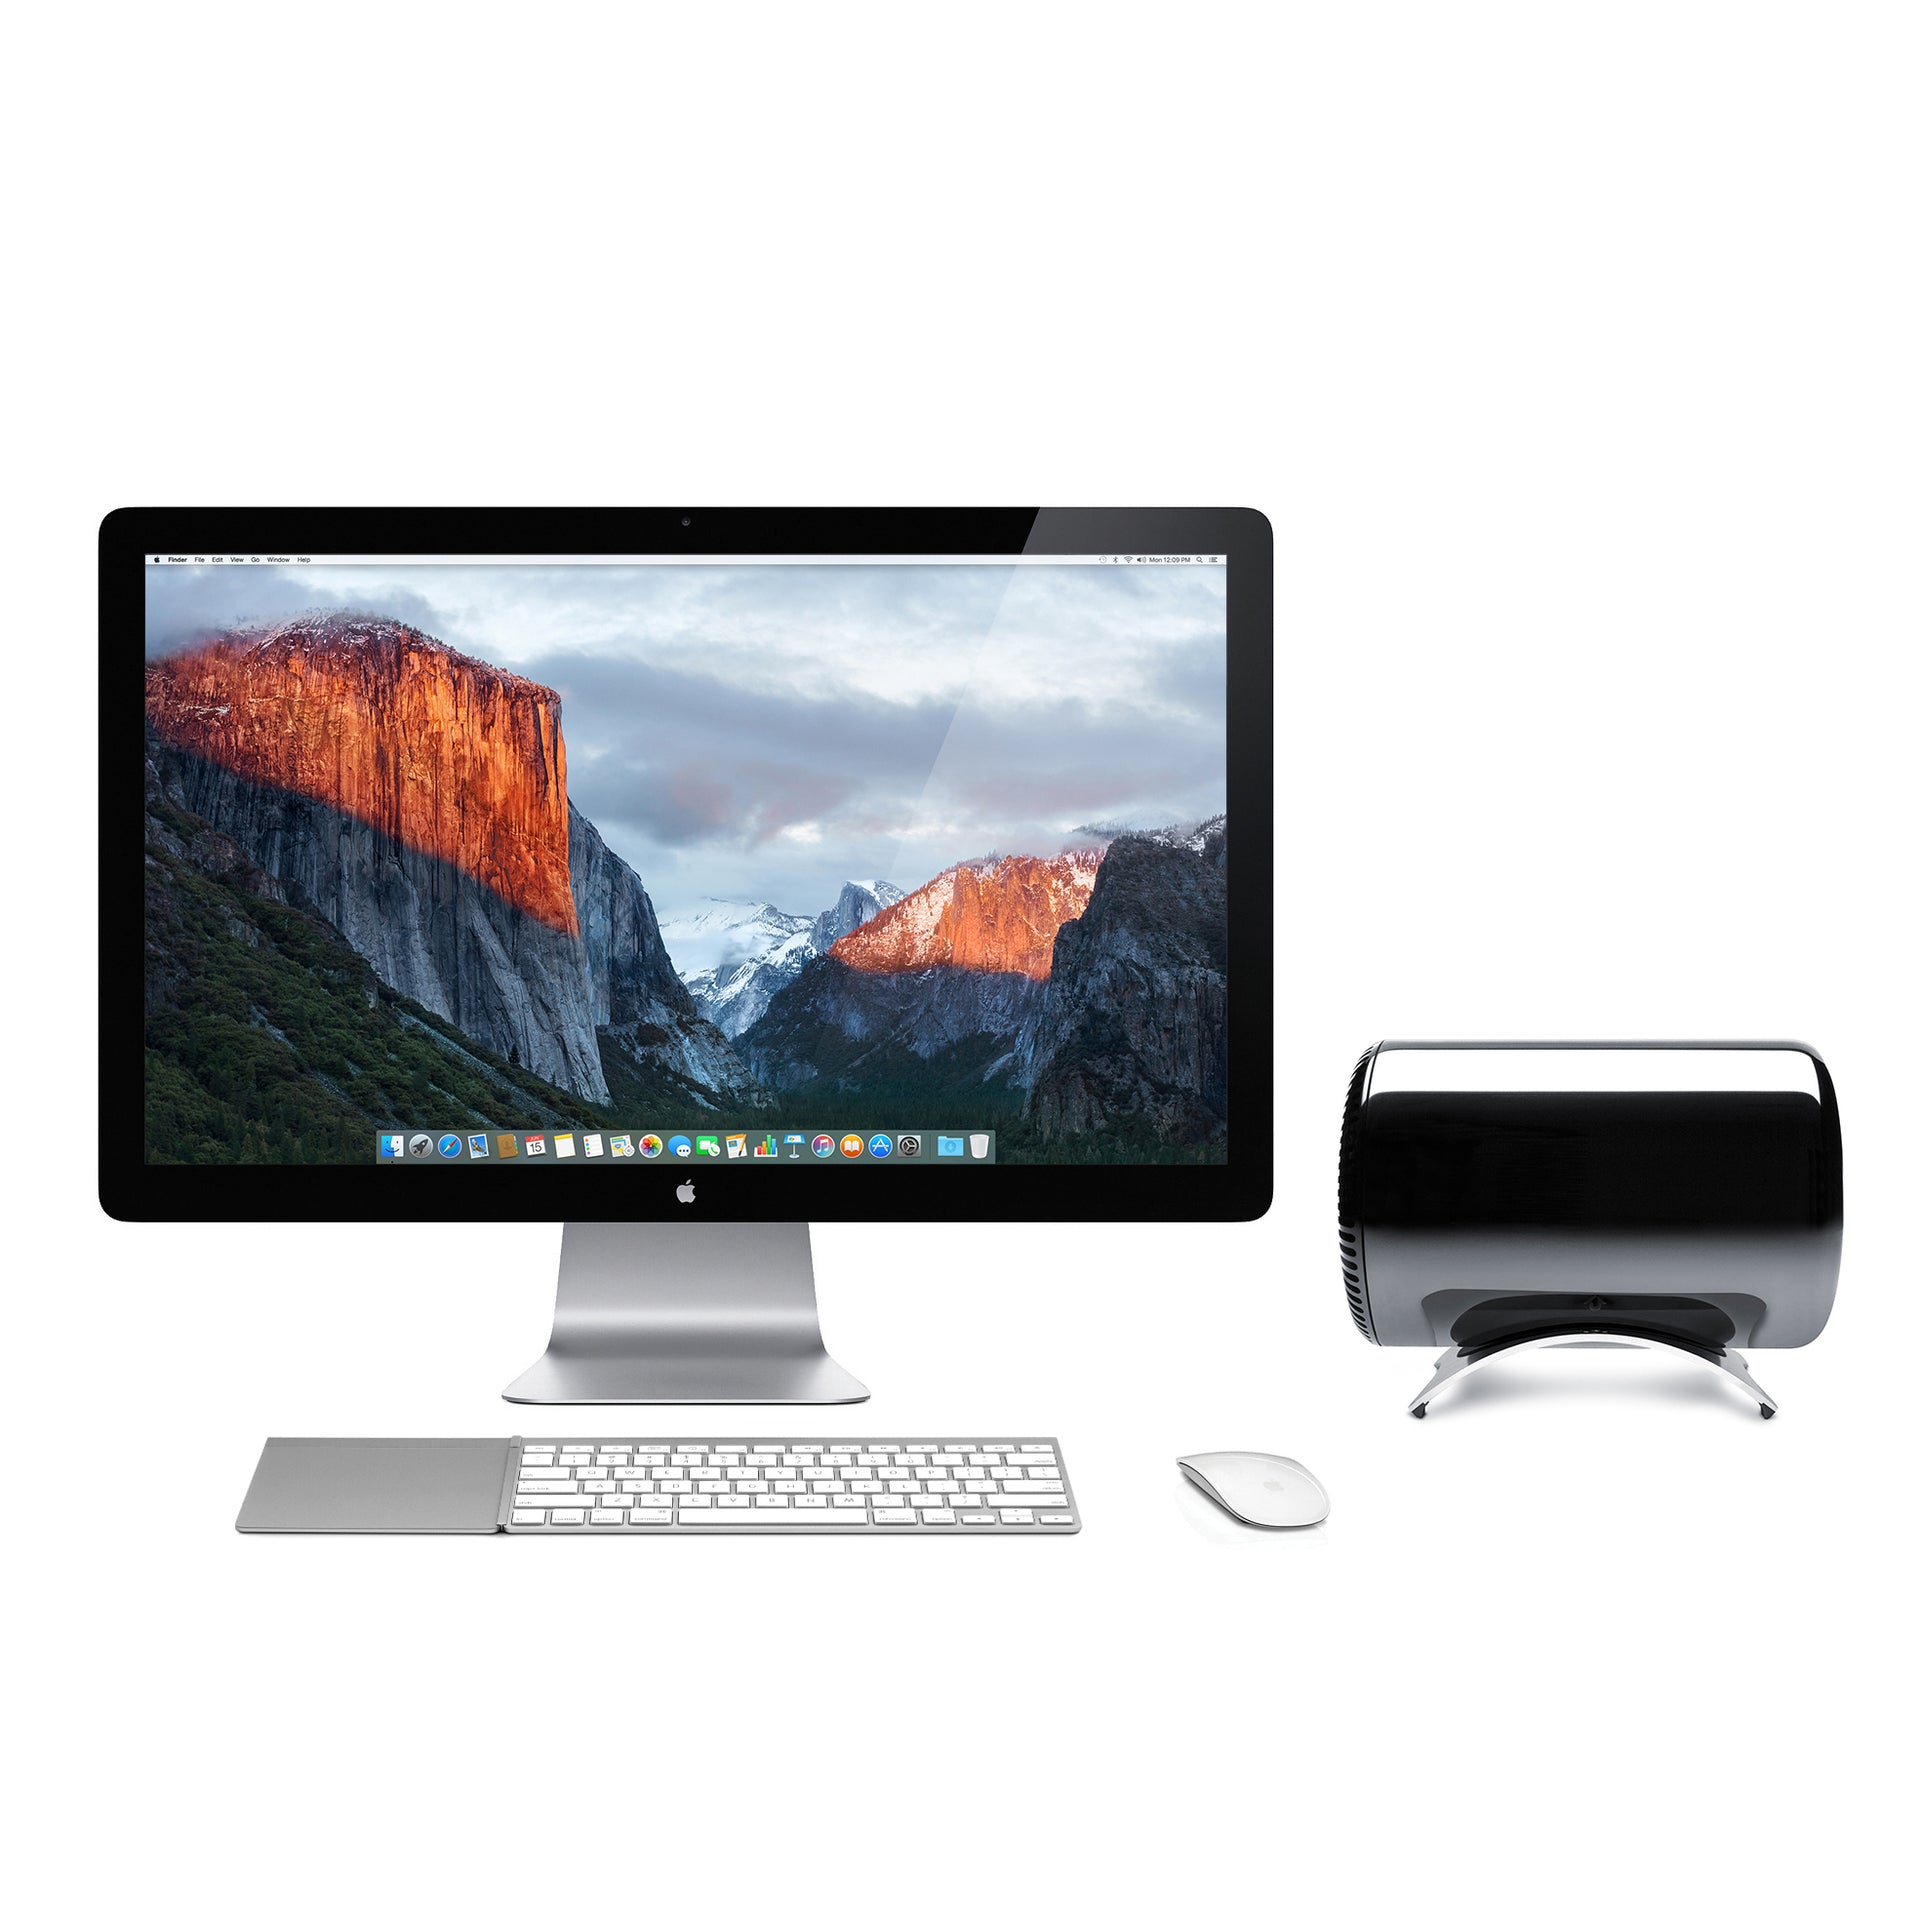 Meet BookArc for Mac Pro